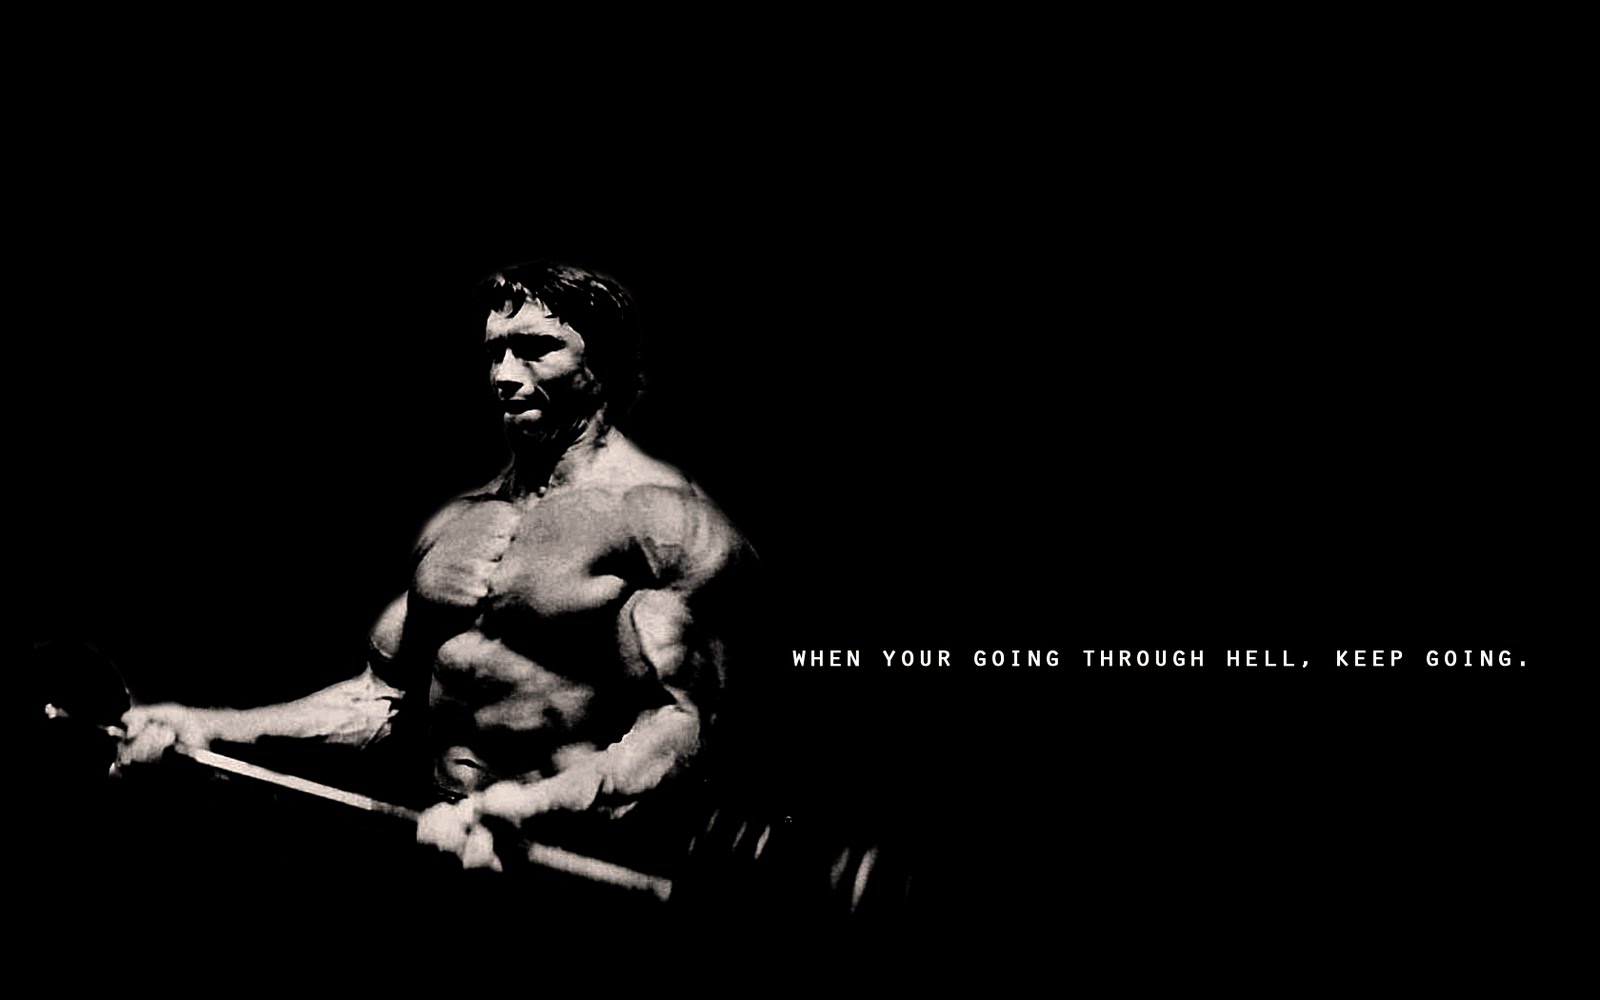 Most Motivational Wallpapers   Page 20   Bodybuildingcom Forums 1600x1000